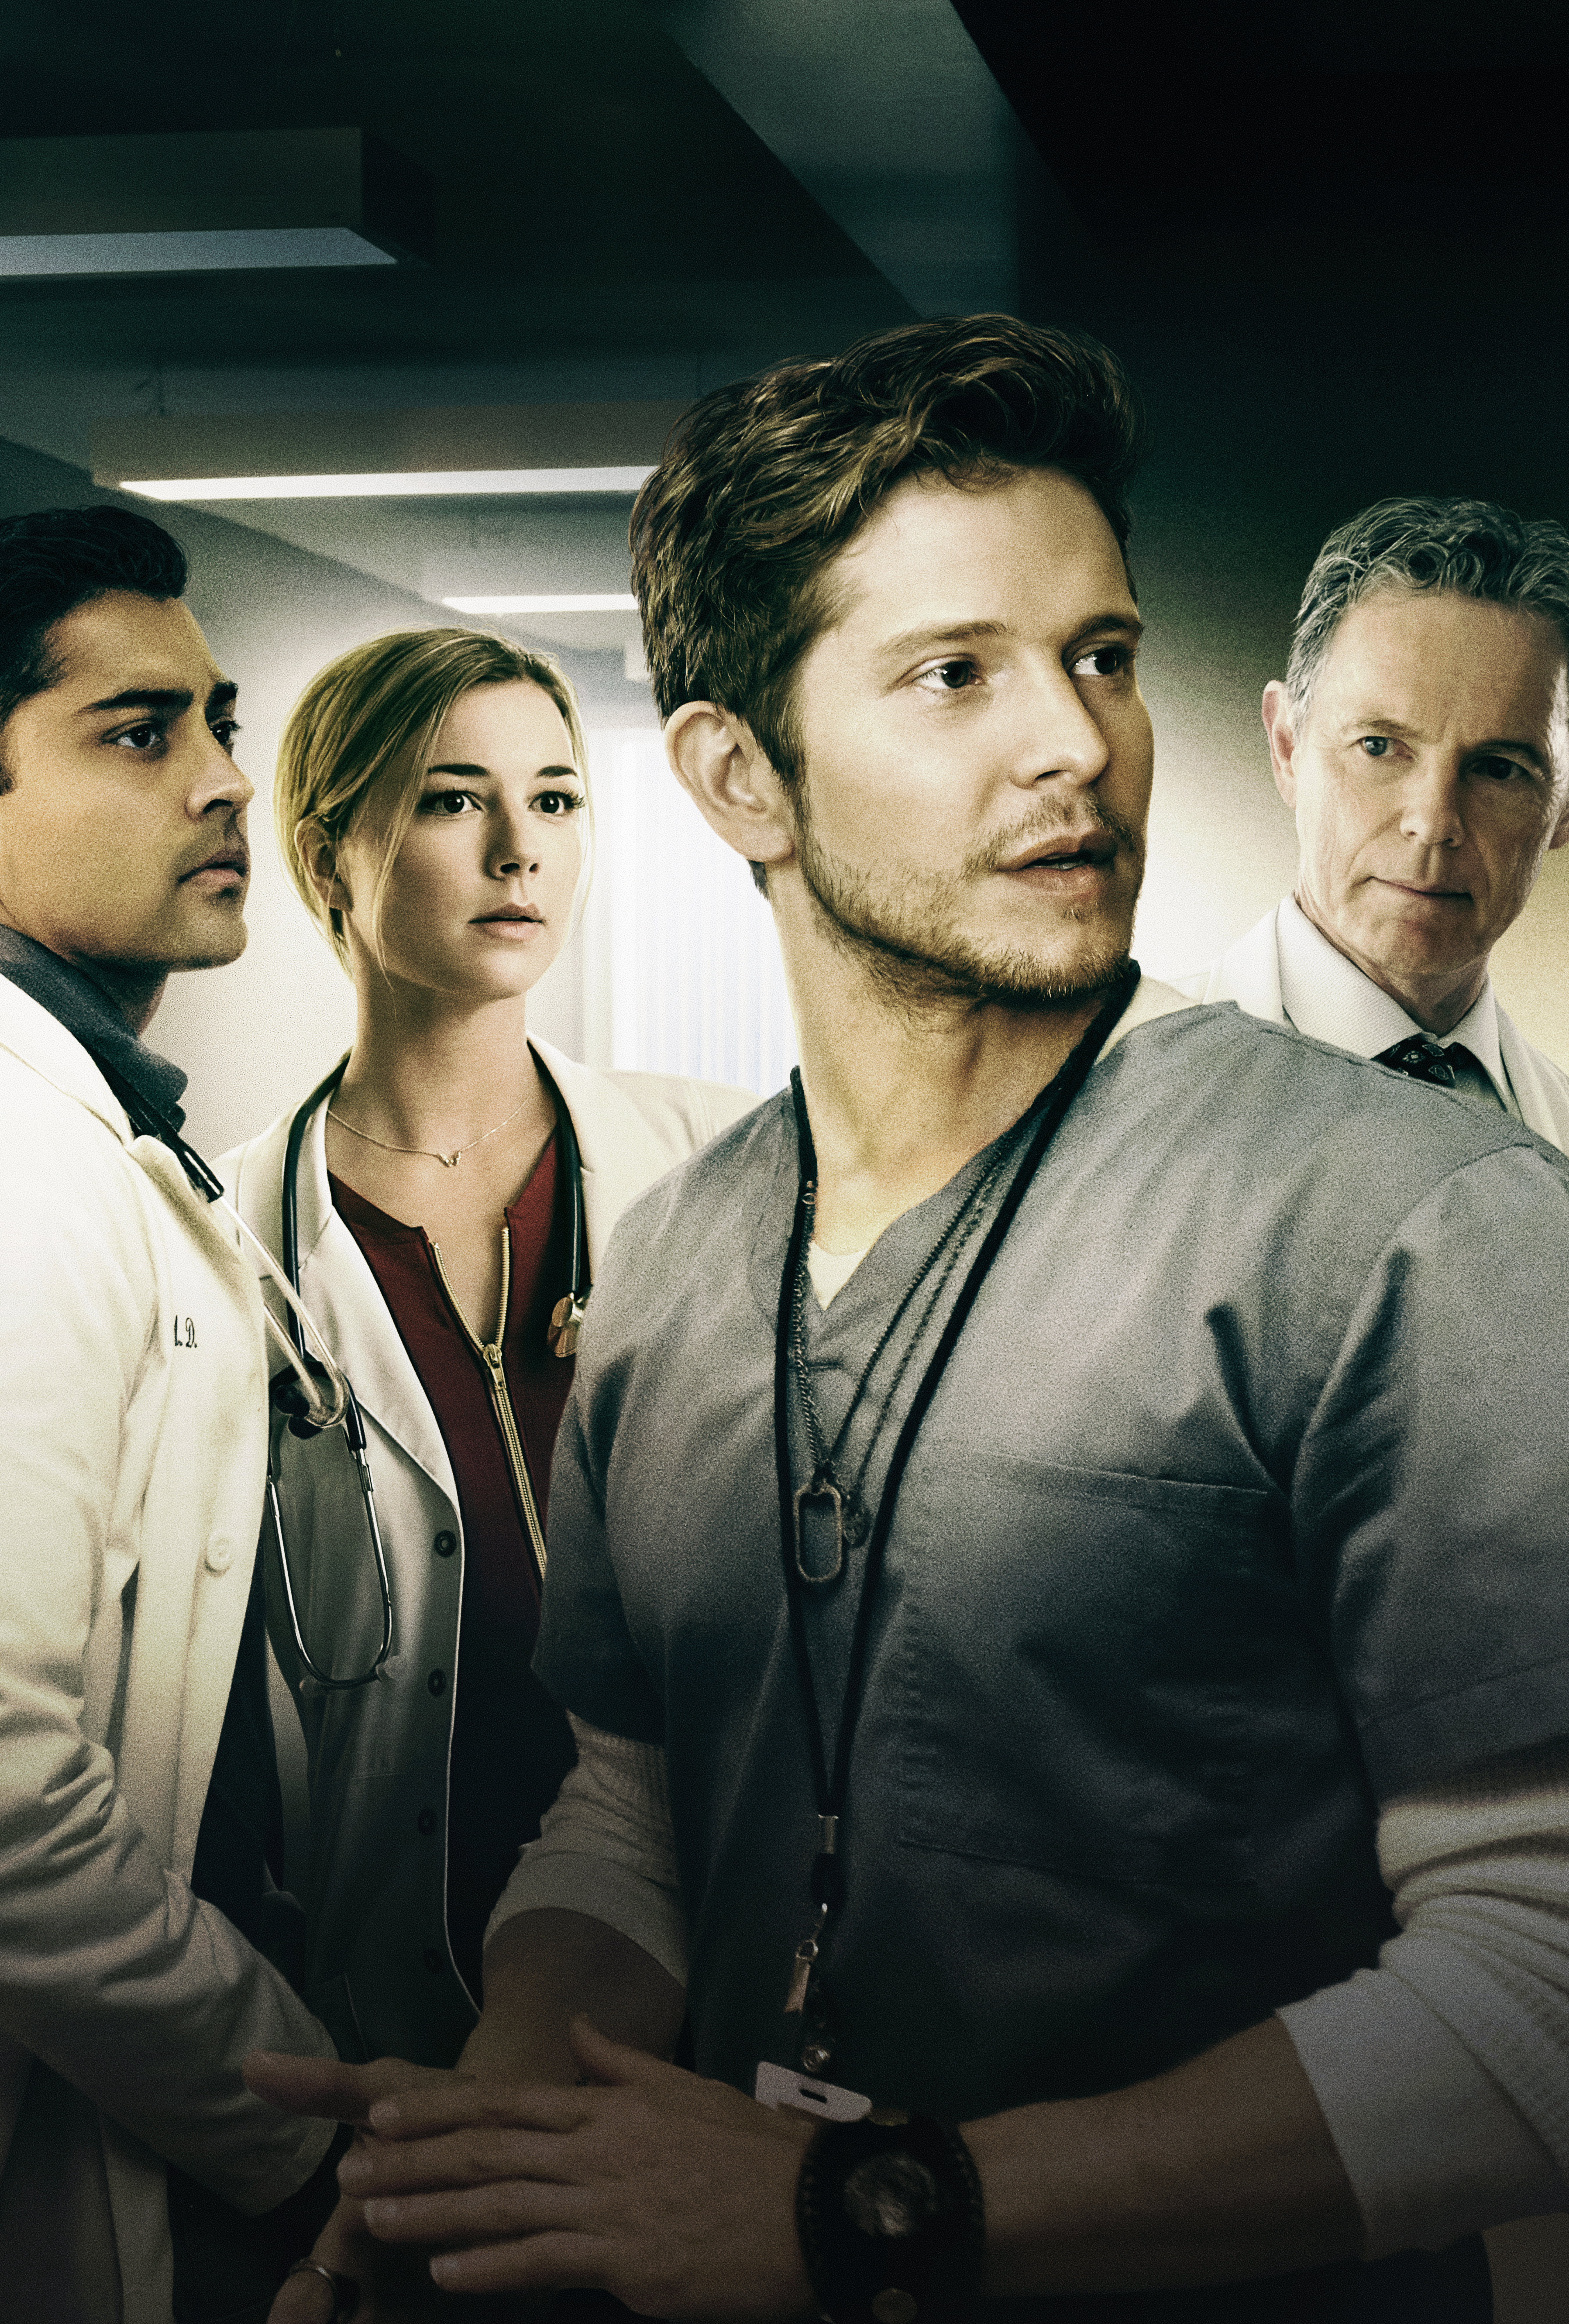 THE RESIDENT - FOX ABRIL 2018 (2)